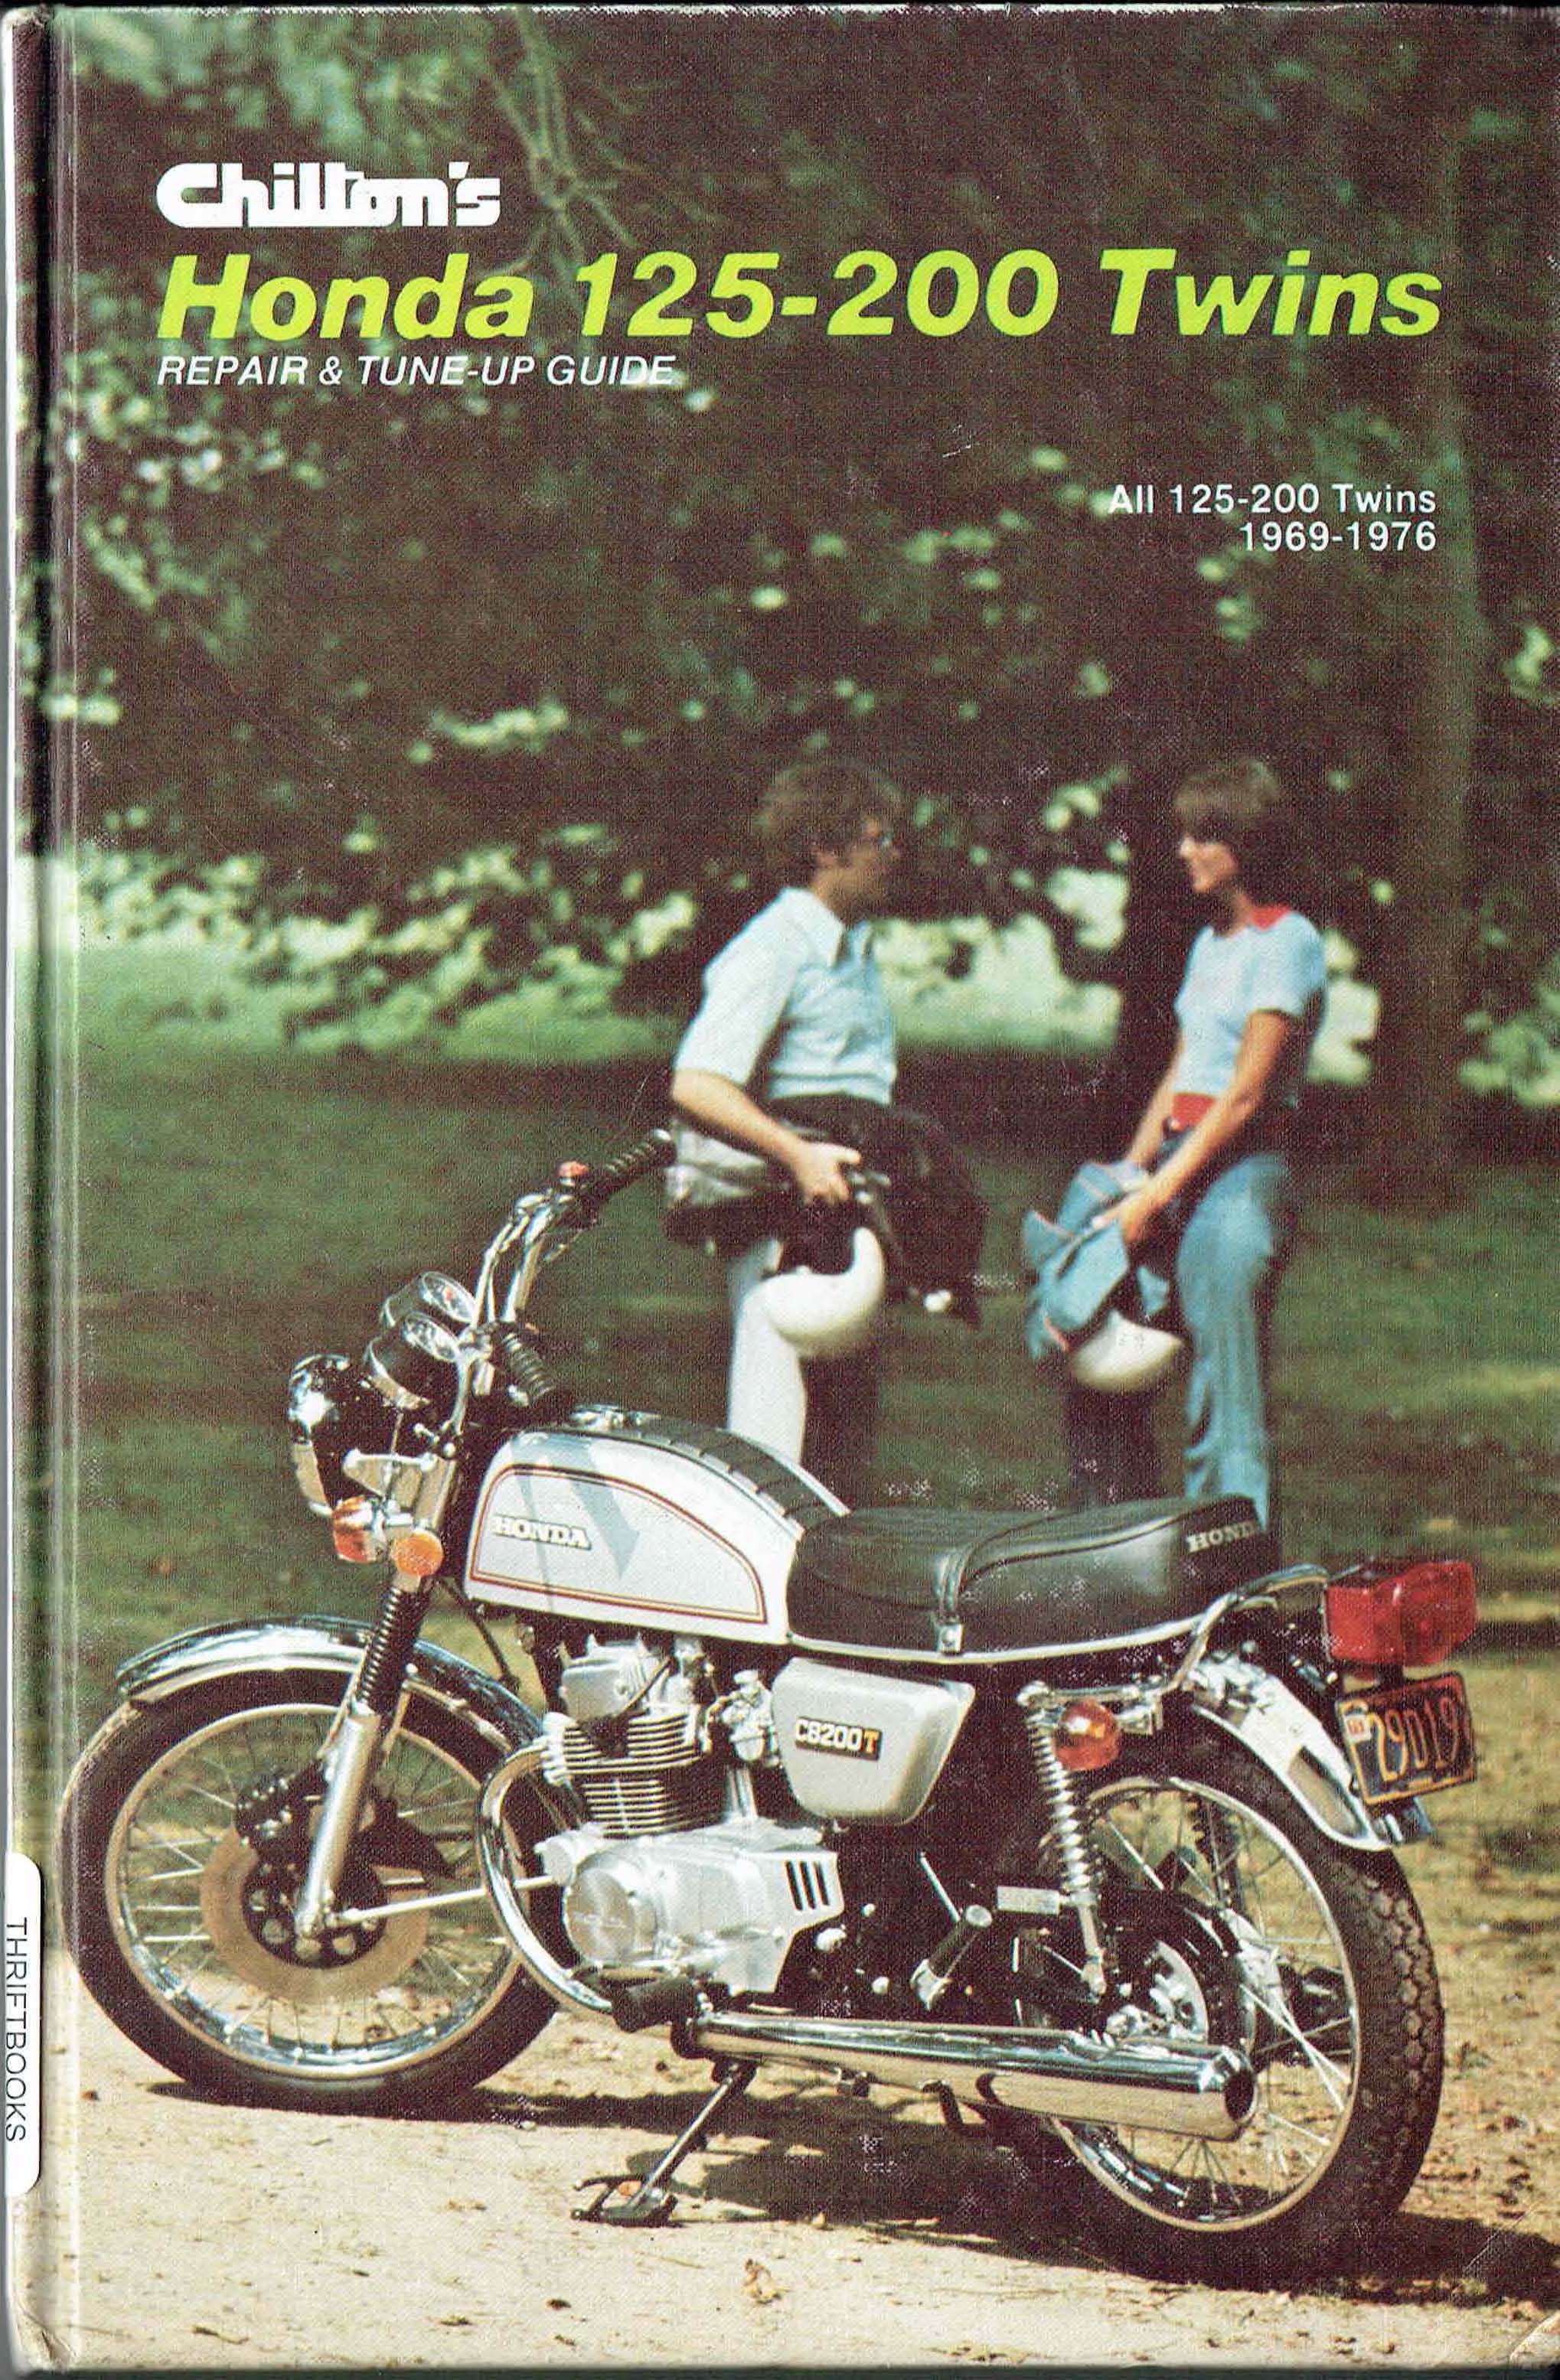 Chilton's Honda 125-200 Twins Repair and Tuning Guide (1975)